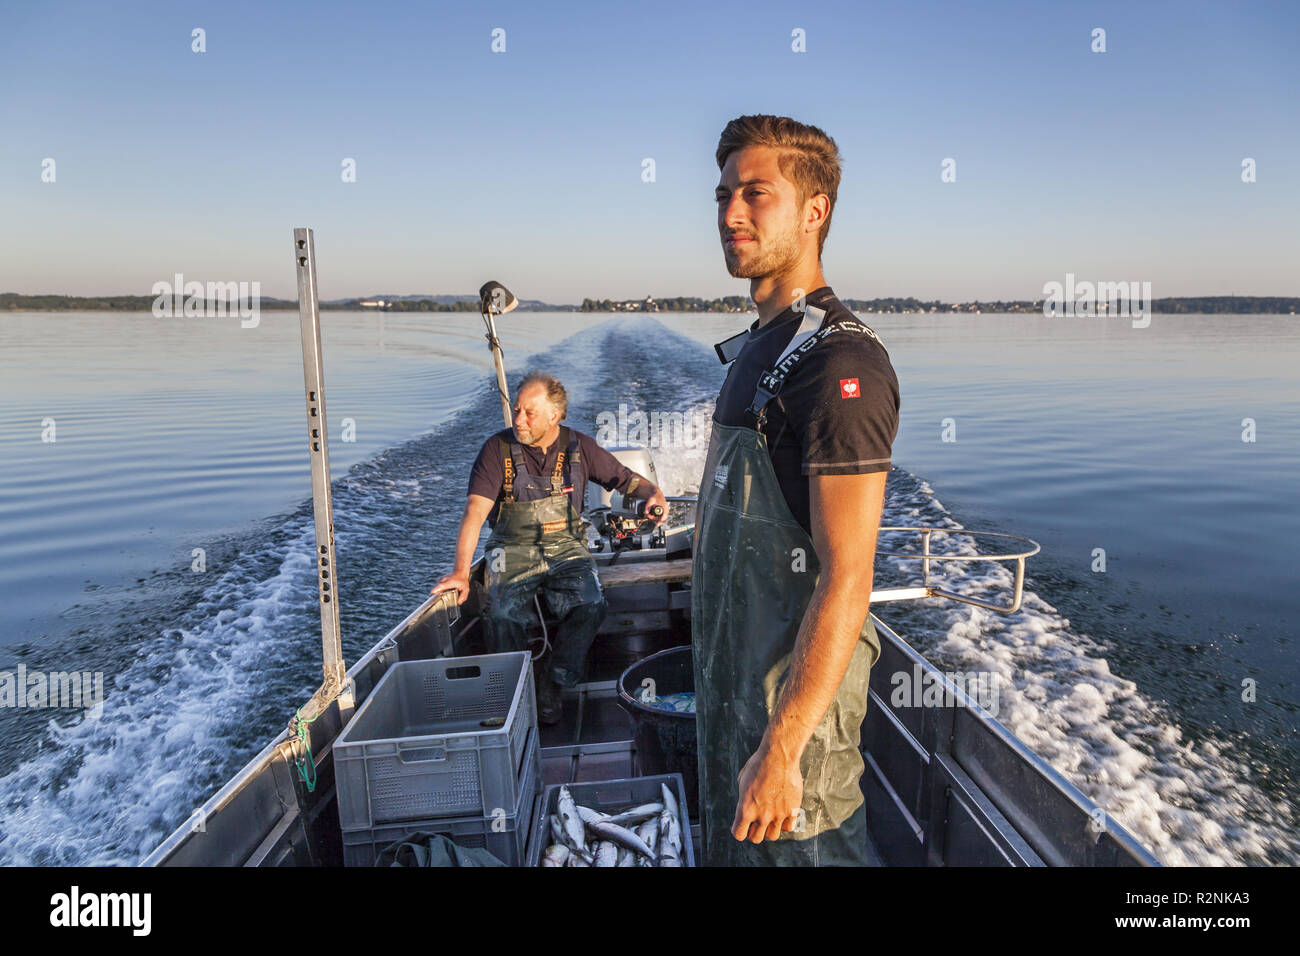 Fishermen Thomas and Florian Lex from the Fraueninsel when driving over the Chiemsee, Frauenchiemsee, Chiemgau, Upper Bavaria, Bavaria, southern Germany, Germany, Europe - Stock Image